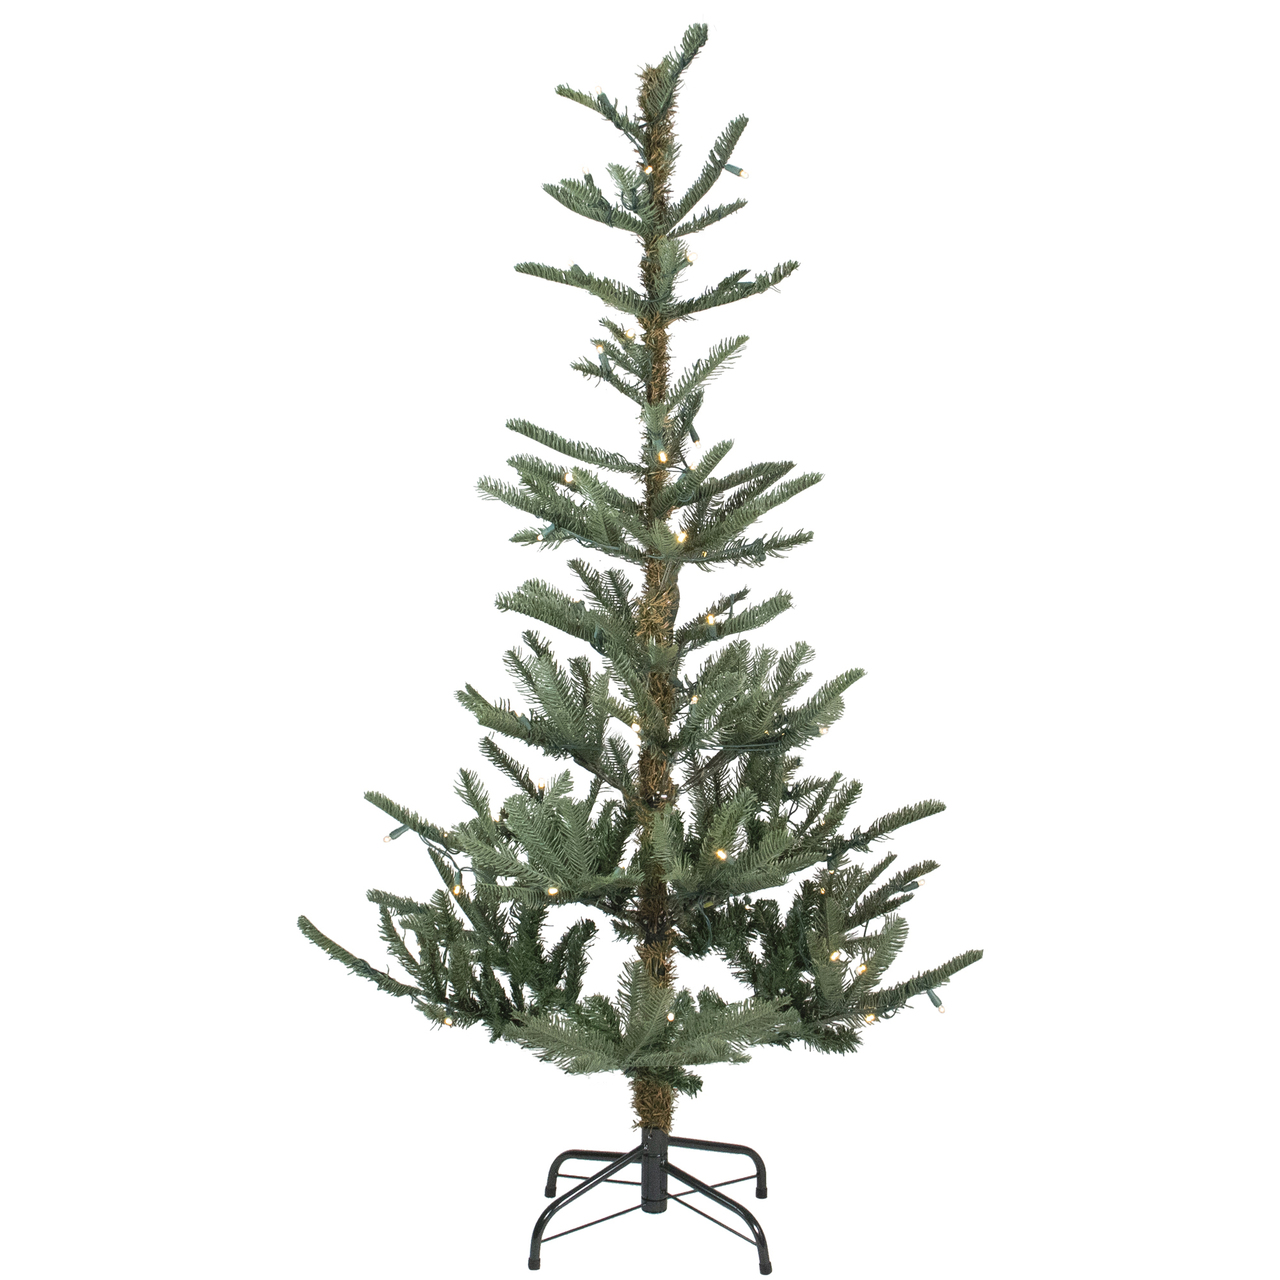 Pre Lit Led Lights Christmas Tree: 9' Pre-Lit Slim Layered Noble Fir Artificial Christmas